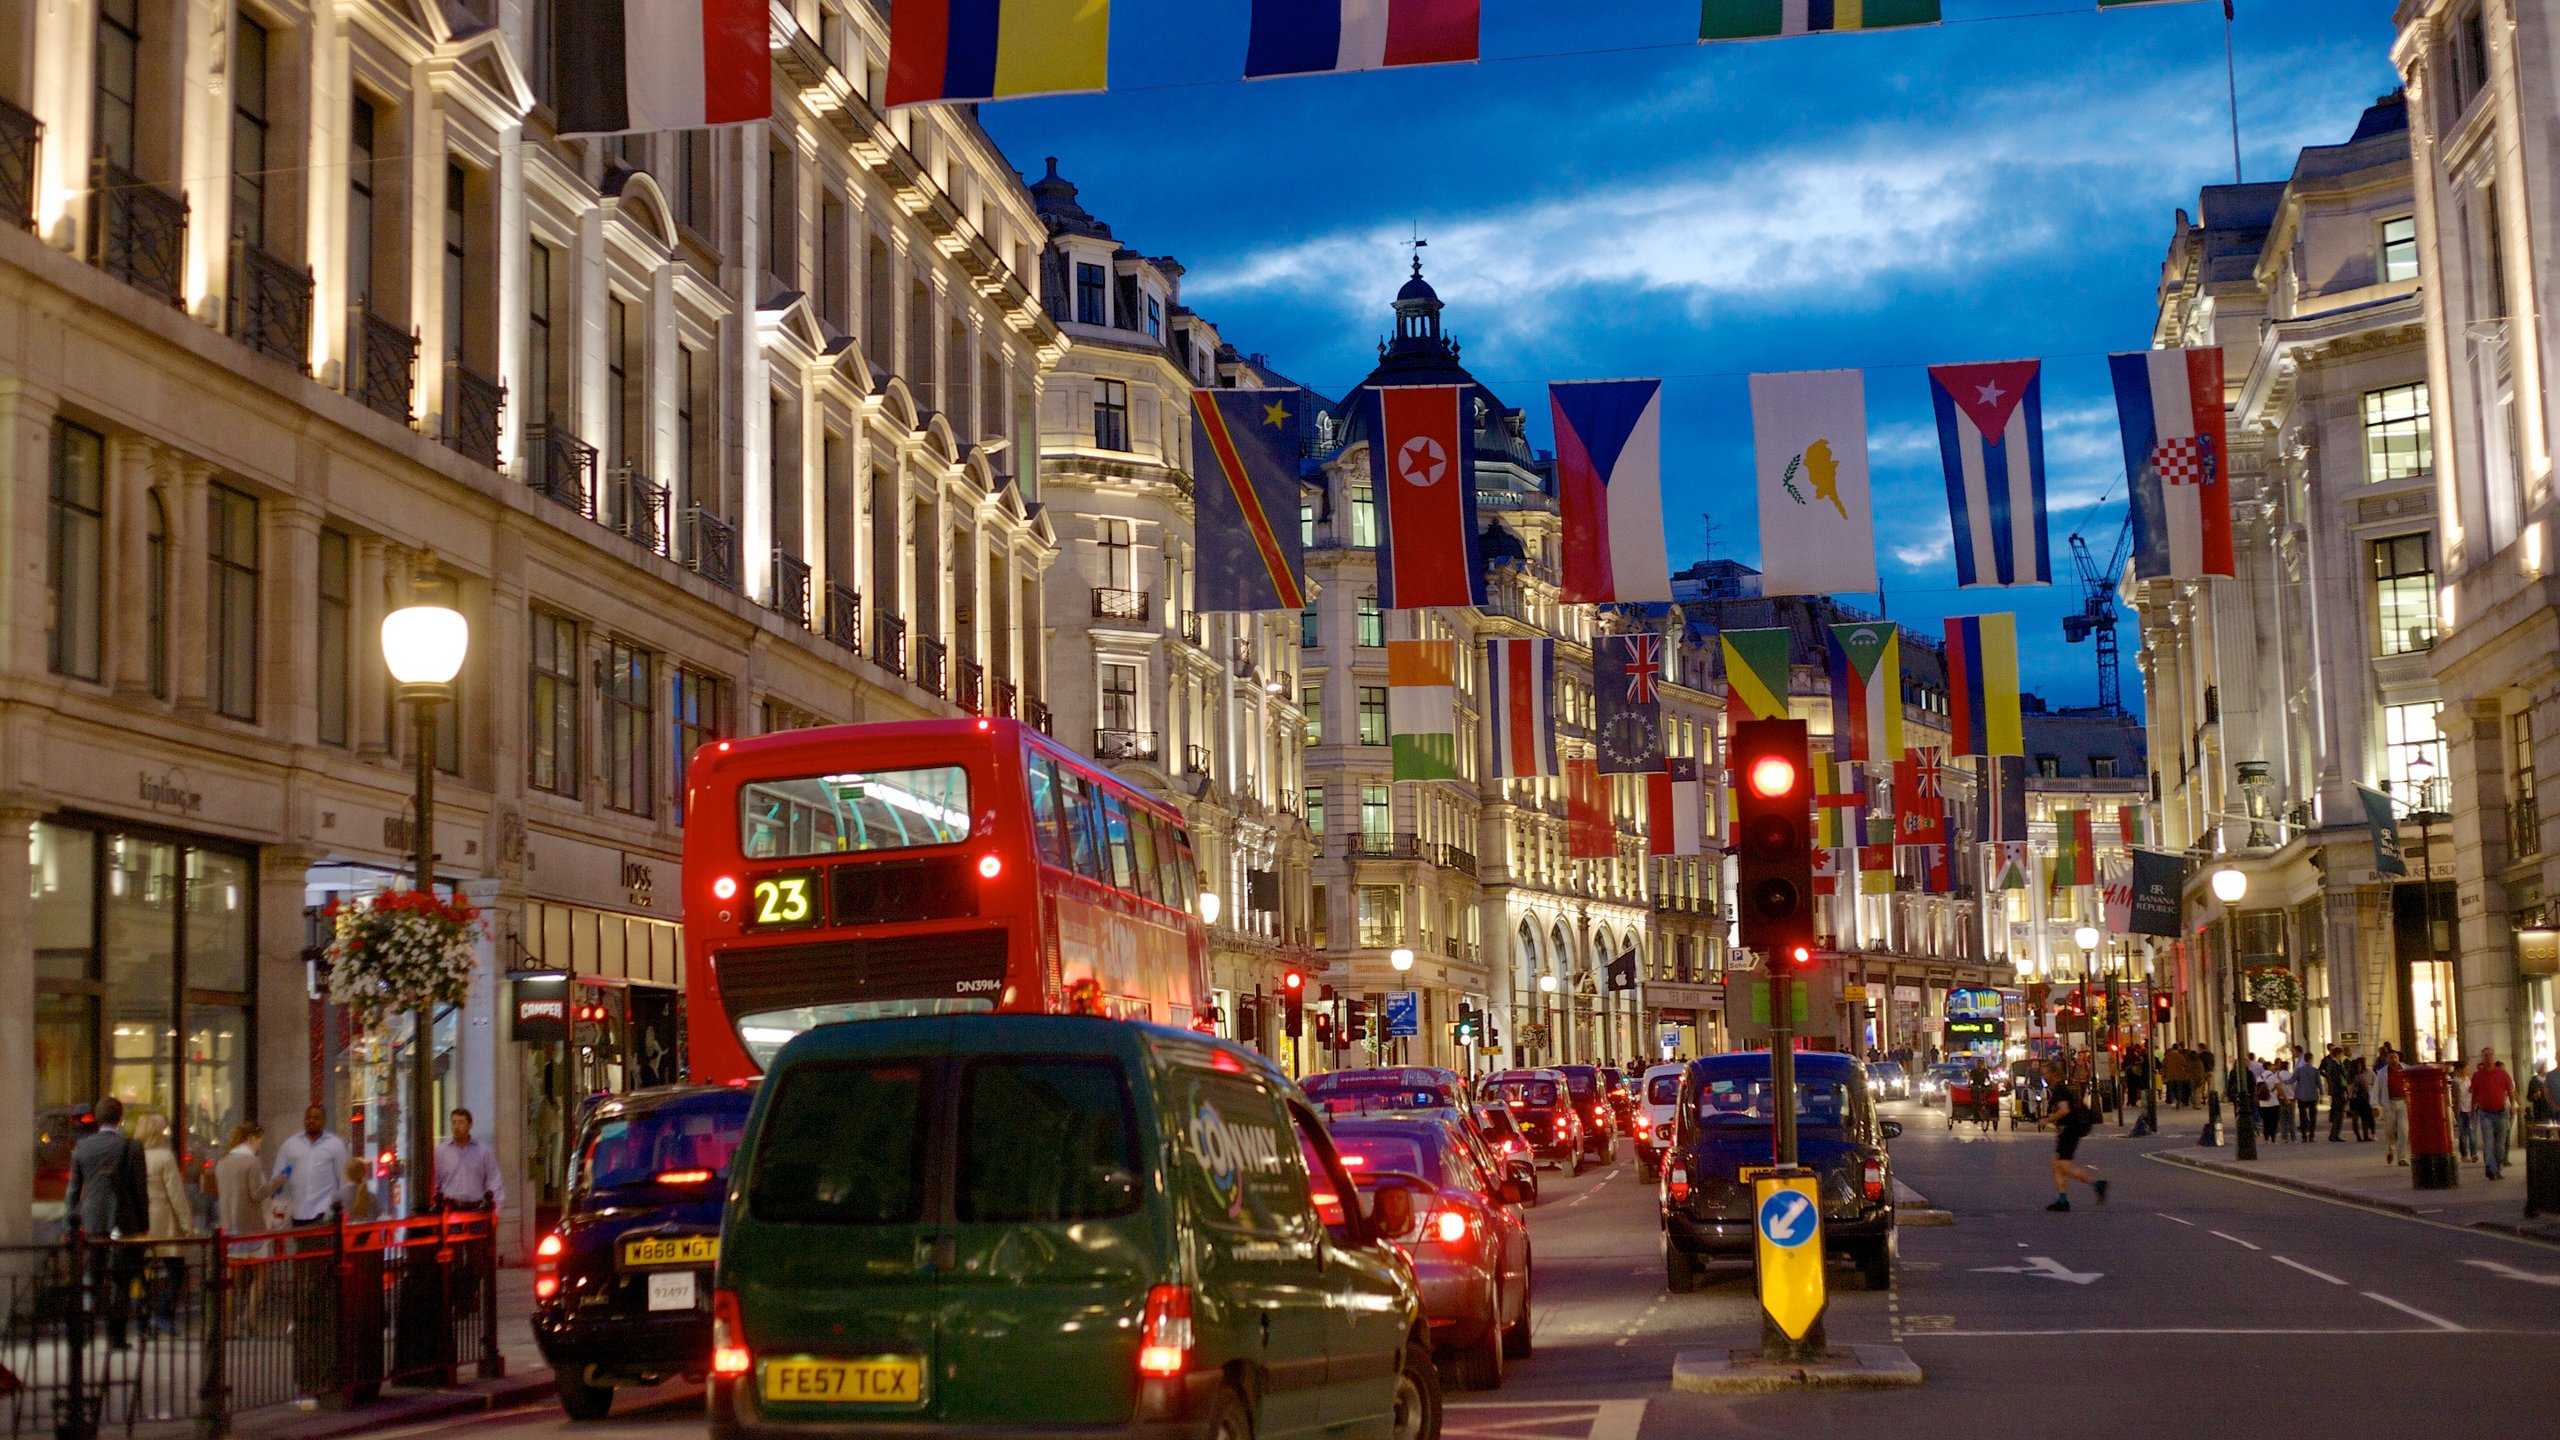 Connecting Rooms Davanzati Hotel: Top 10 Hotels With Connecting Rooms In London $56